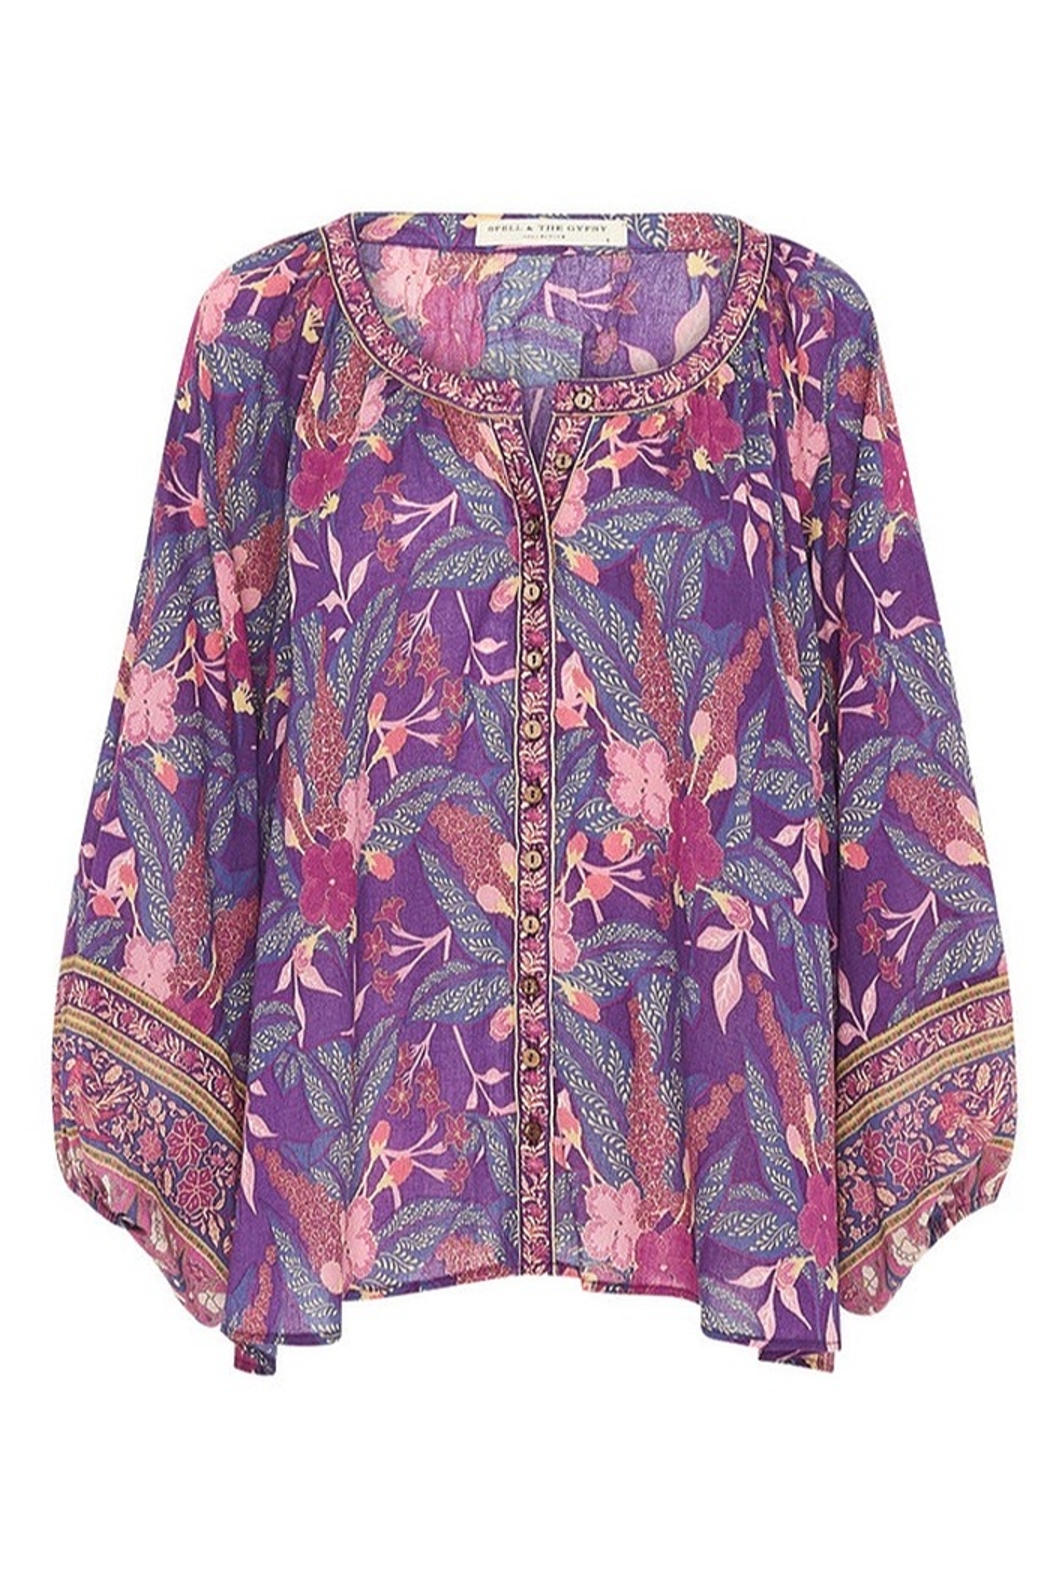 Spell  Bianca Blouse In Wisteria - Back Cropped Image